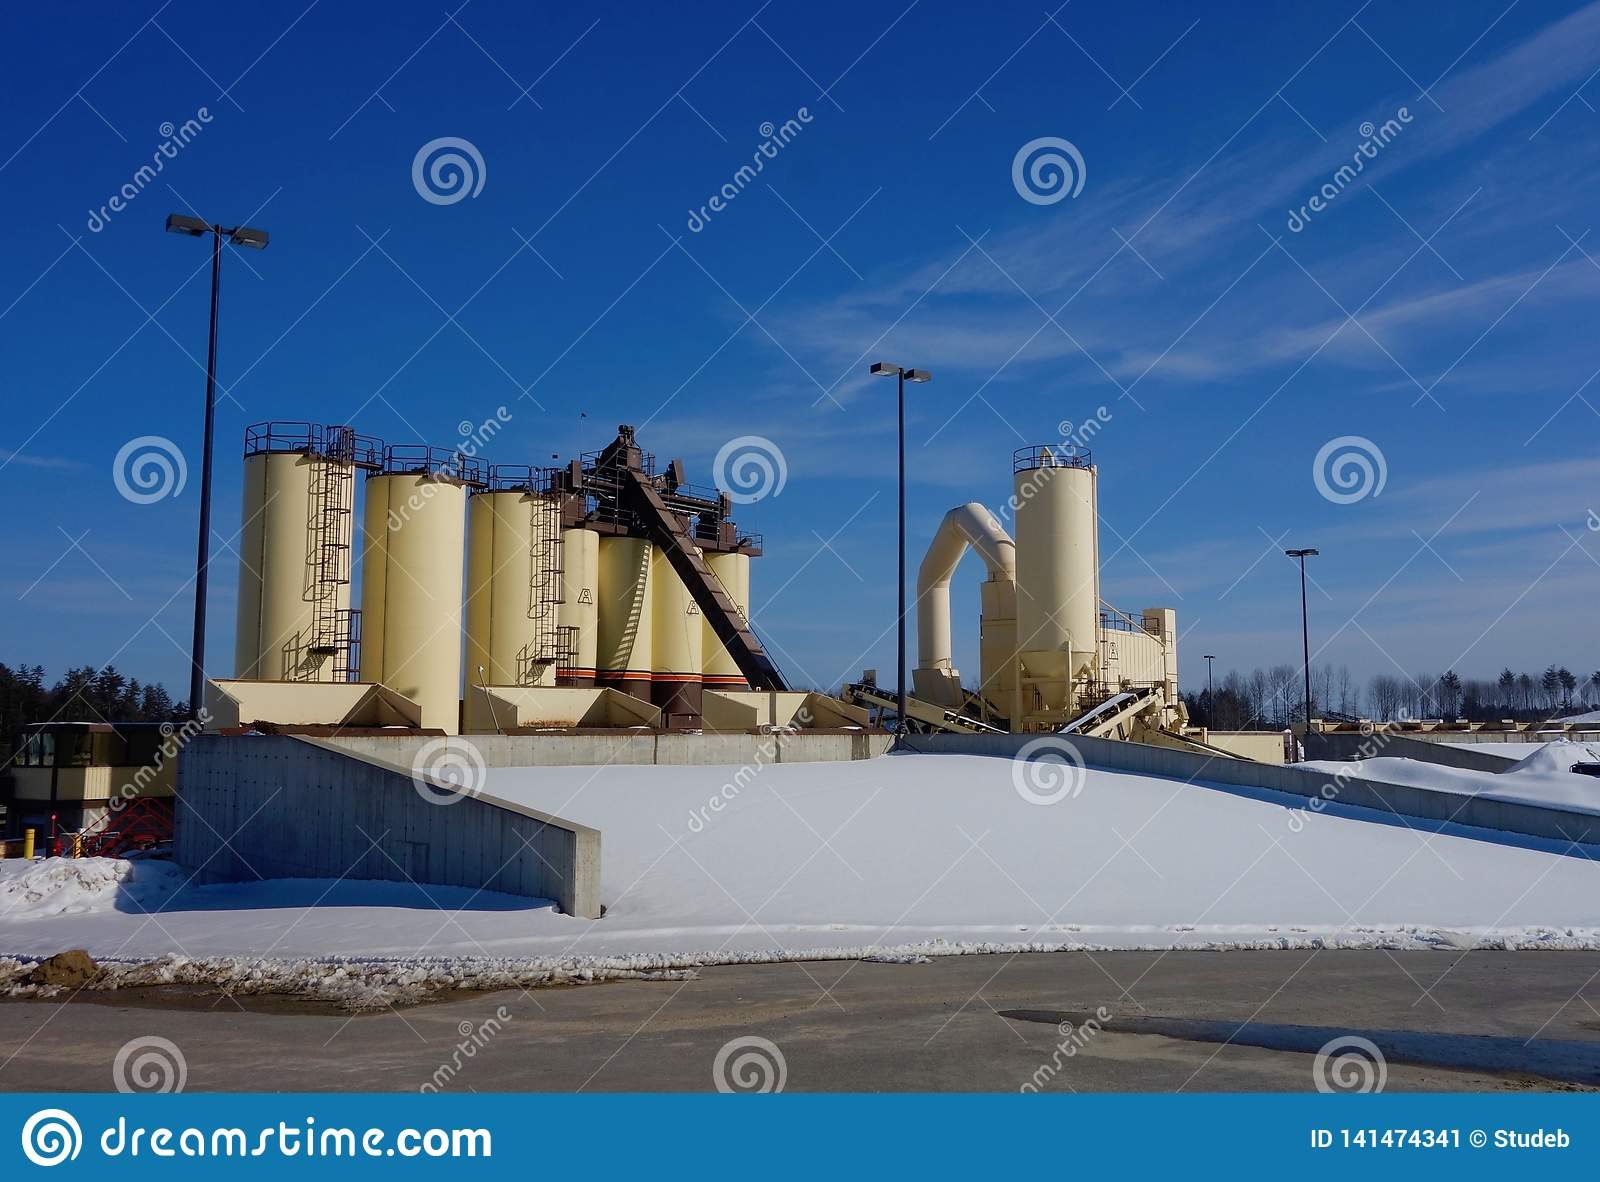 Asphalt production machinery, Cumberland County Maine, March 8, 2019